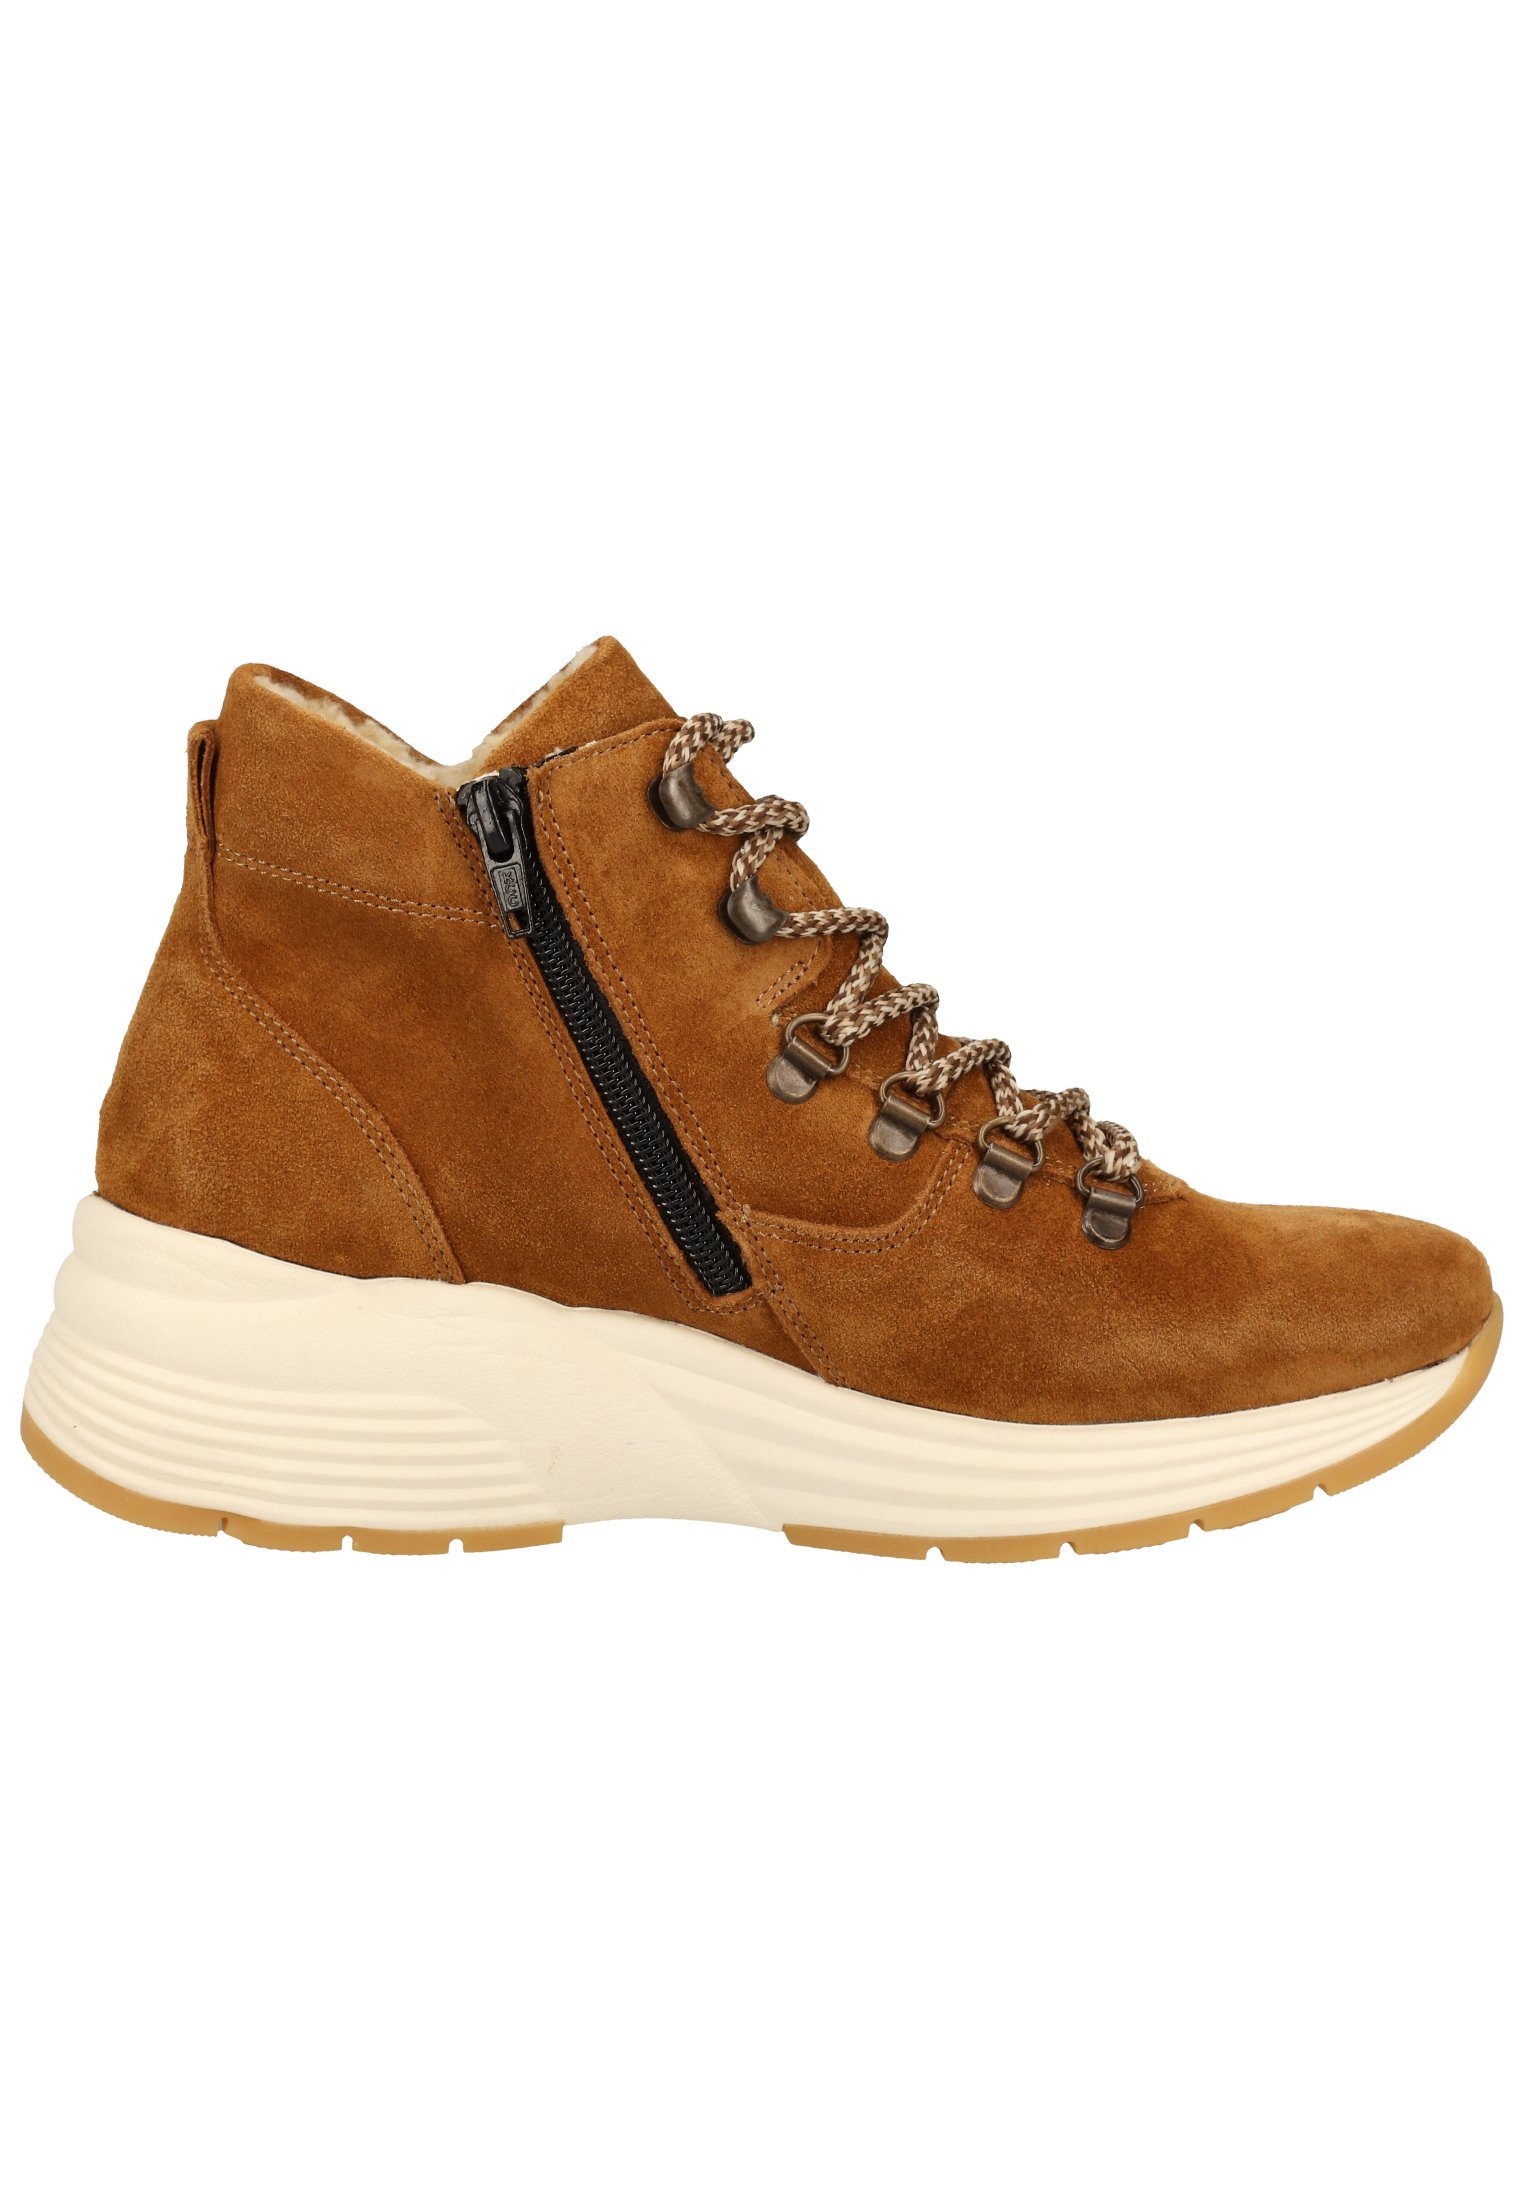 Remonte Sneakers High - Cuoio / 22